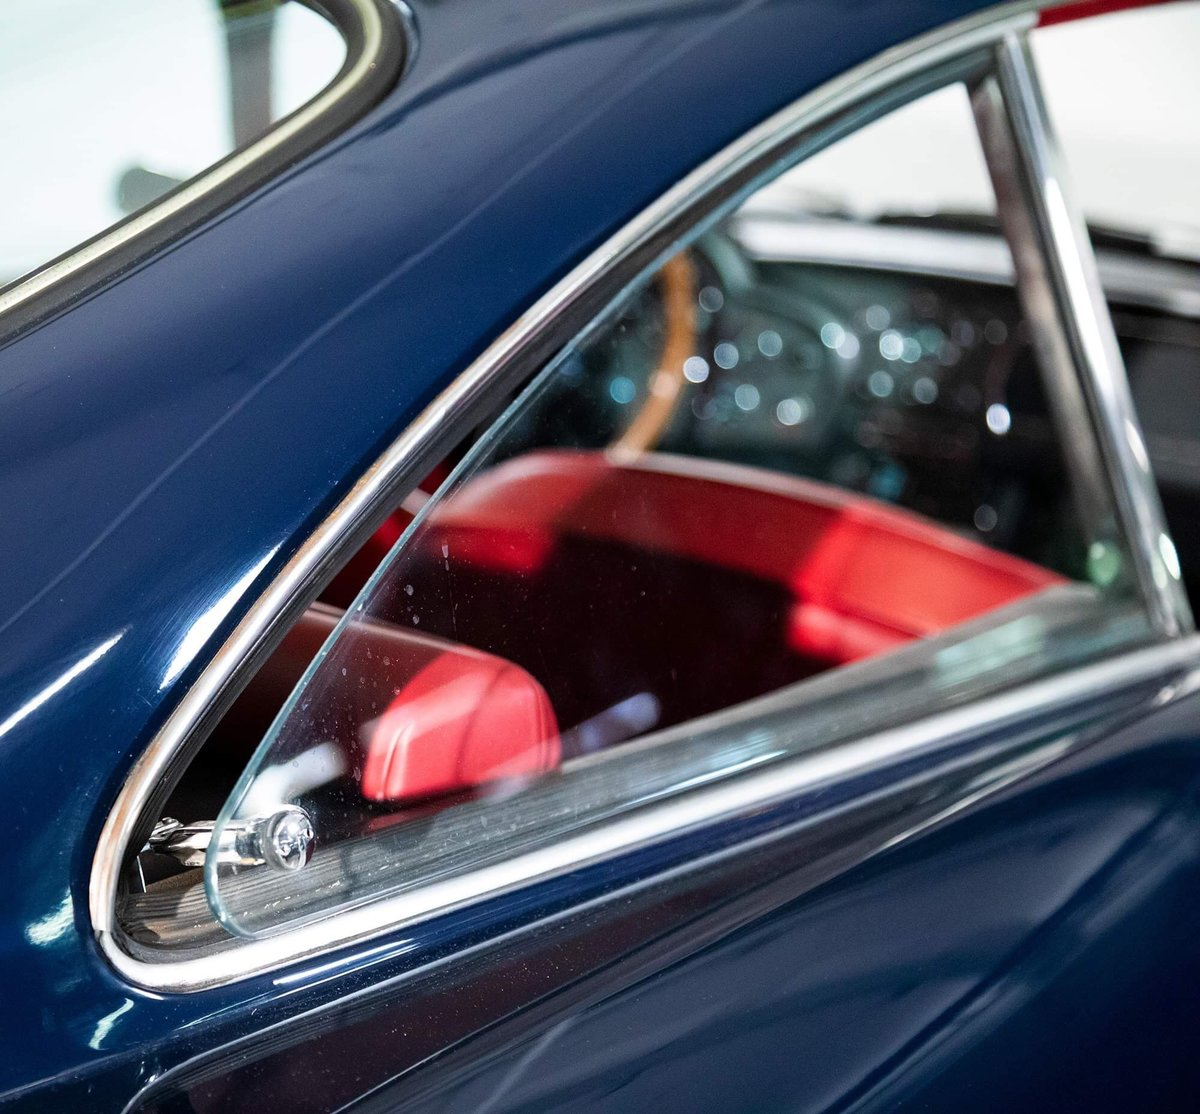 1962 Aston Martin DB4 Vantage SS Series 5 For Sale (picture 9 of 20)